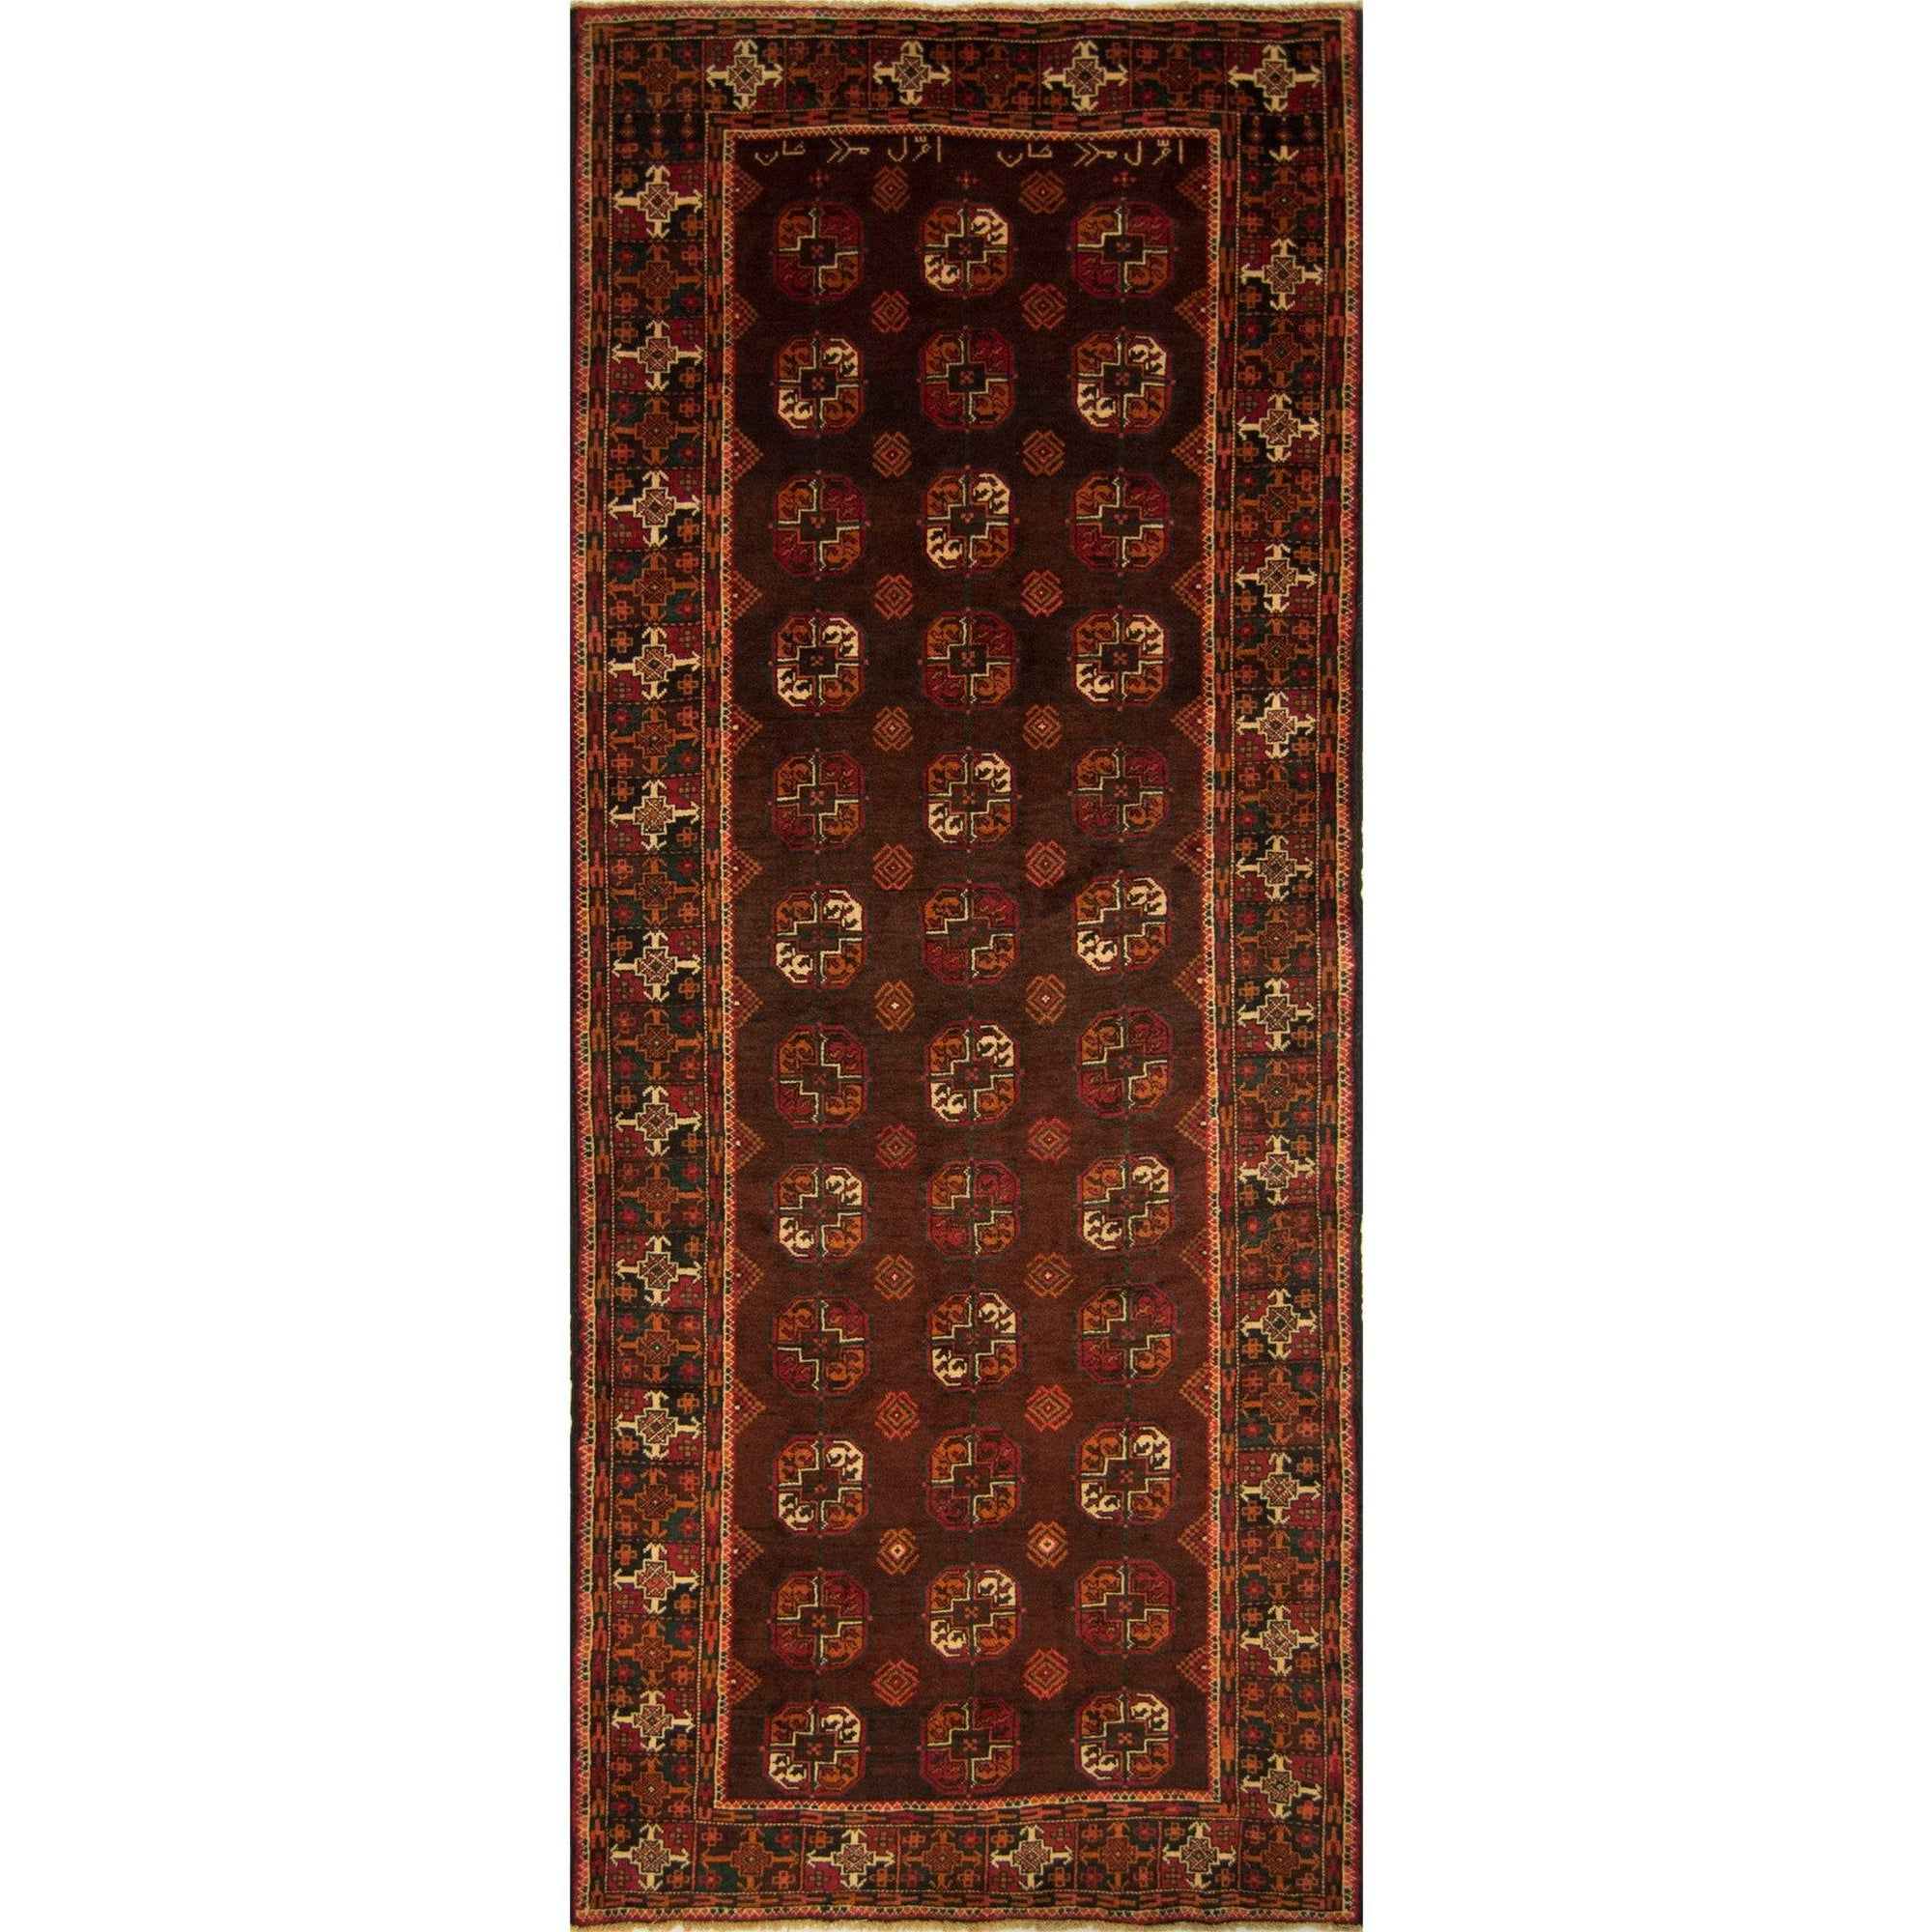 Persian Baluchi Runner 114cm x 292cm Persian-Rug | House-of-Haghi | NewMarket | Auckland | NZ | Handmade Persian Rugs | Hand Knotted Persian Rugs